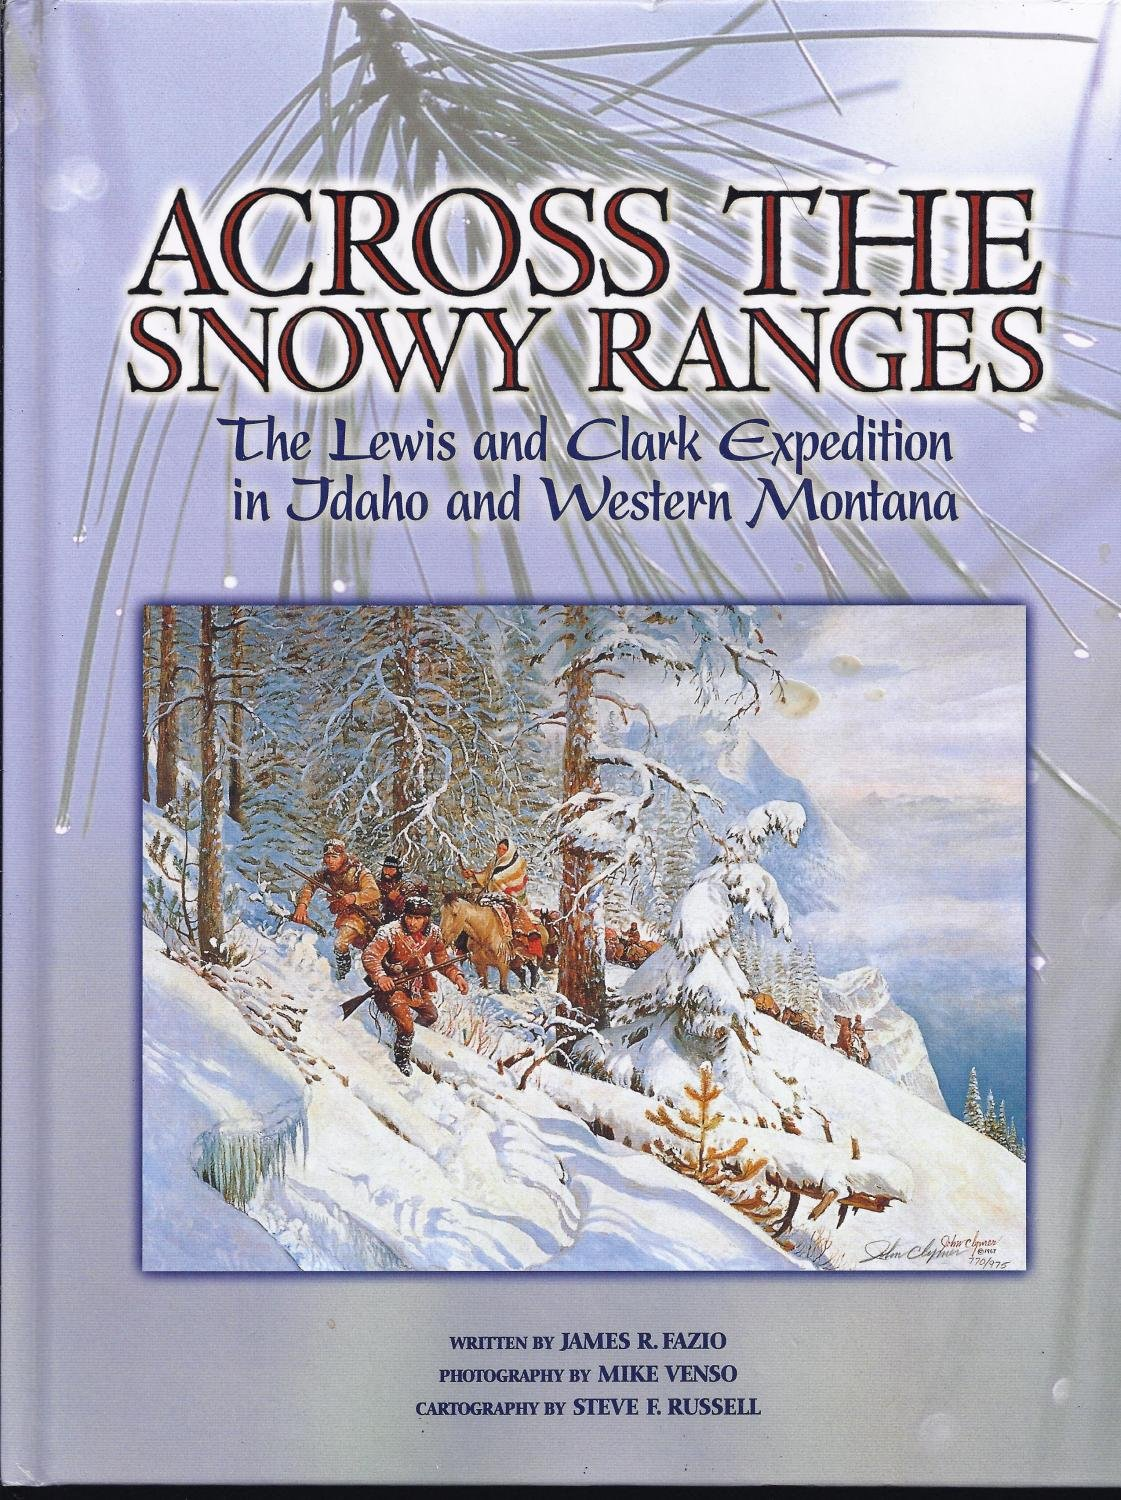 Across the Snowy Ranges: The Lewis and Clark Expedition in Idaho and Western Montana pdf